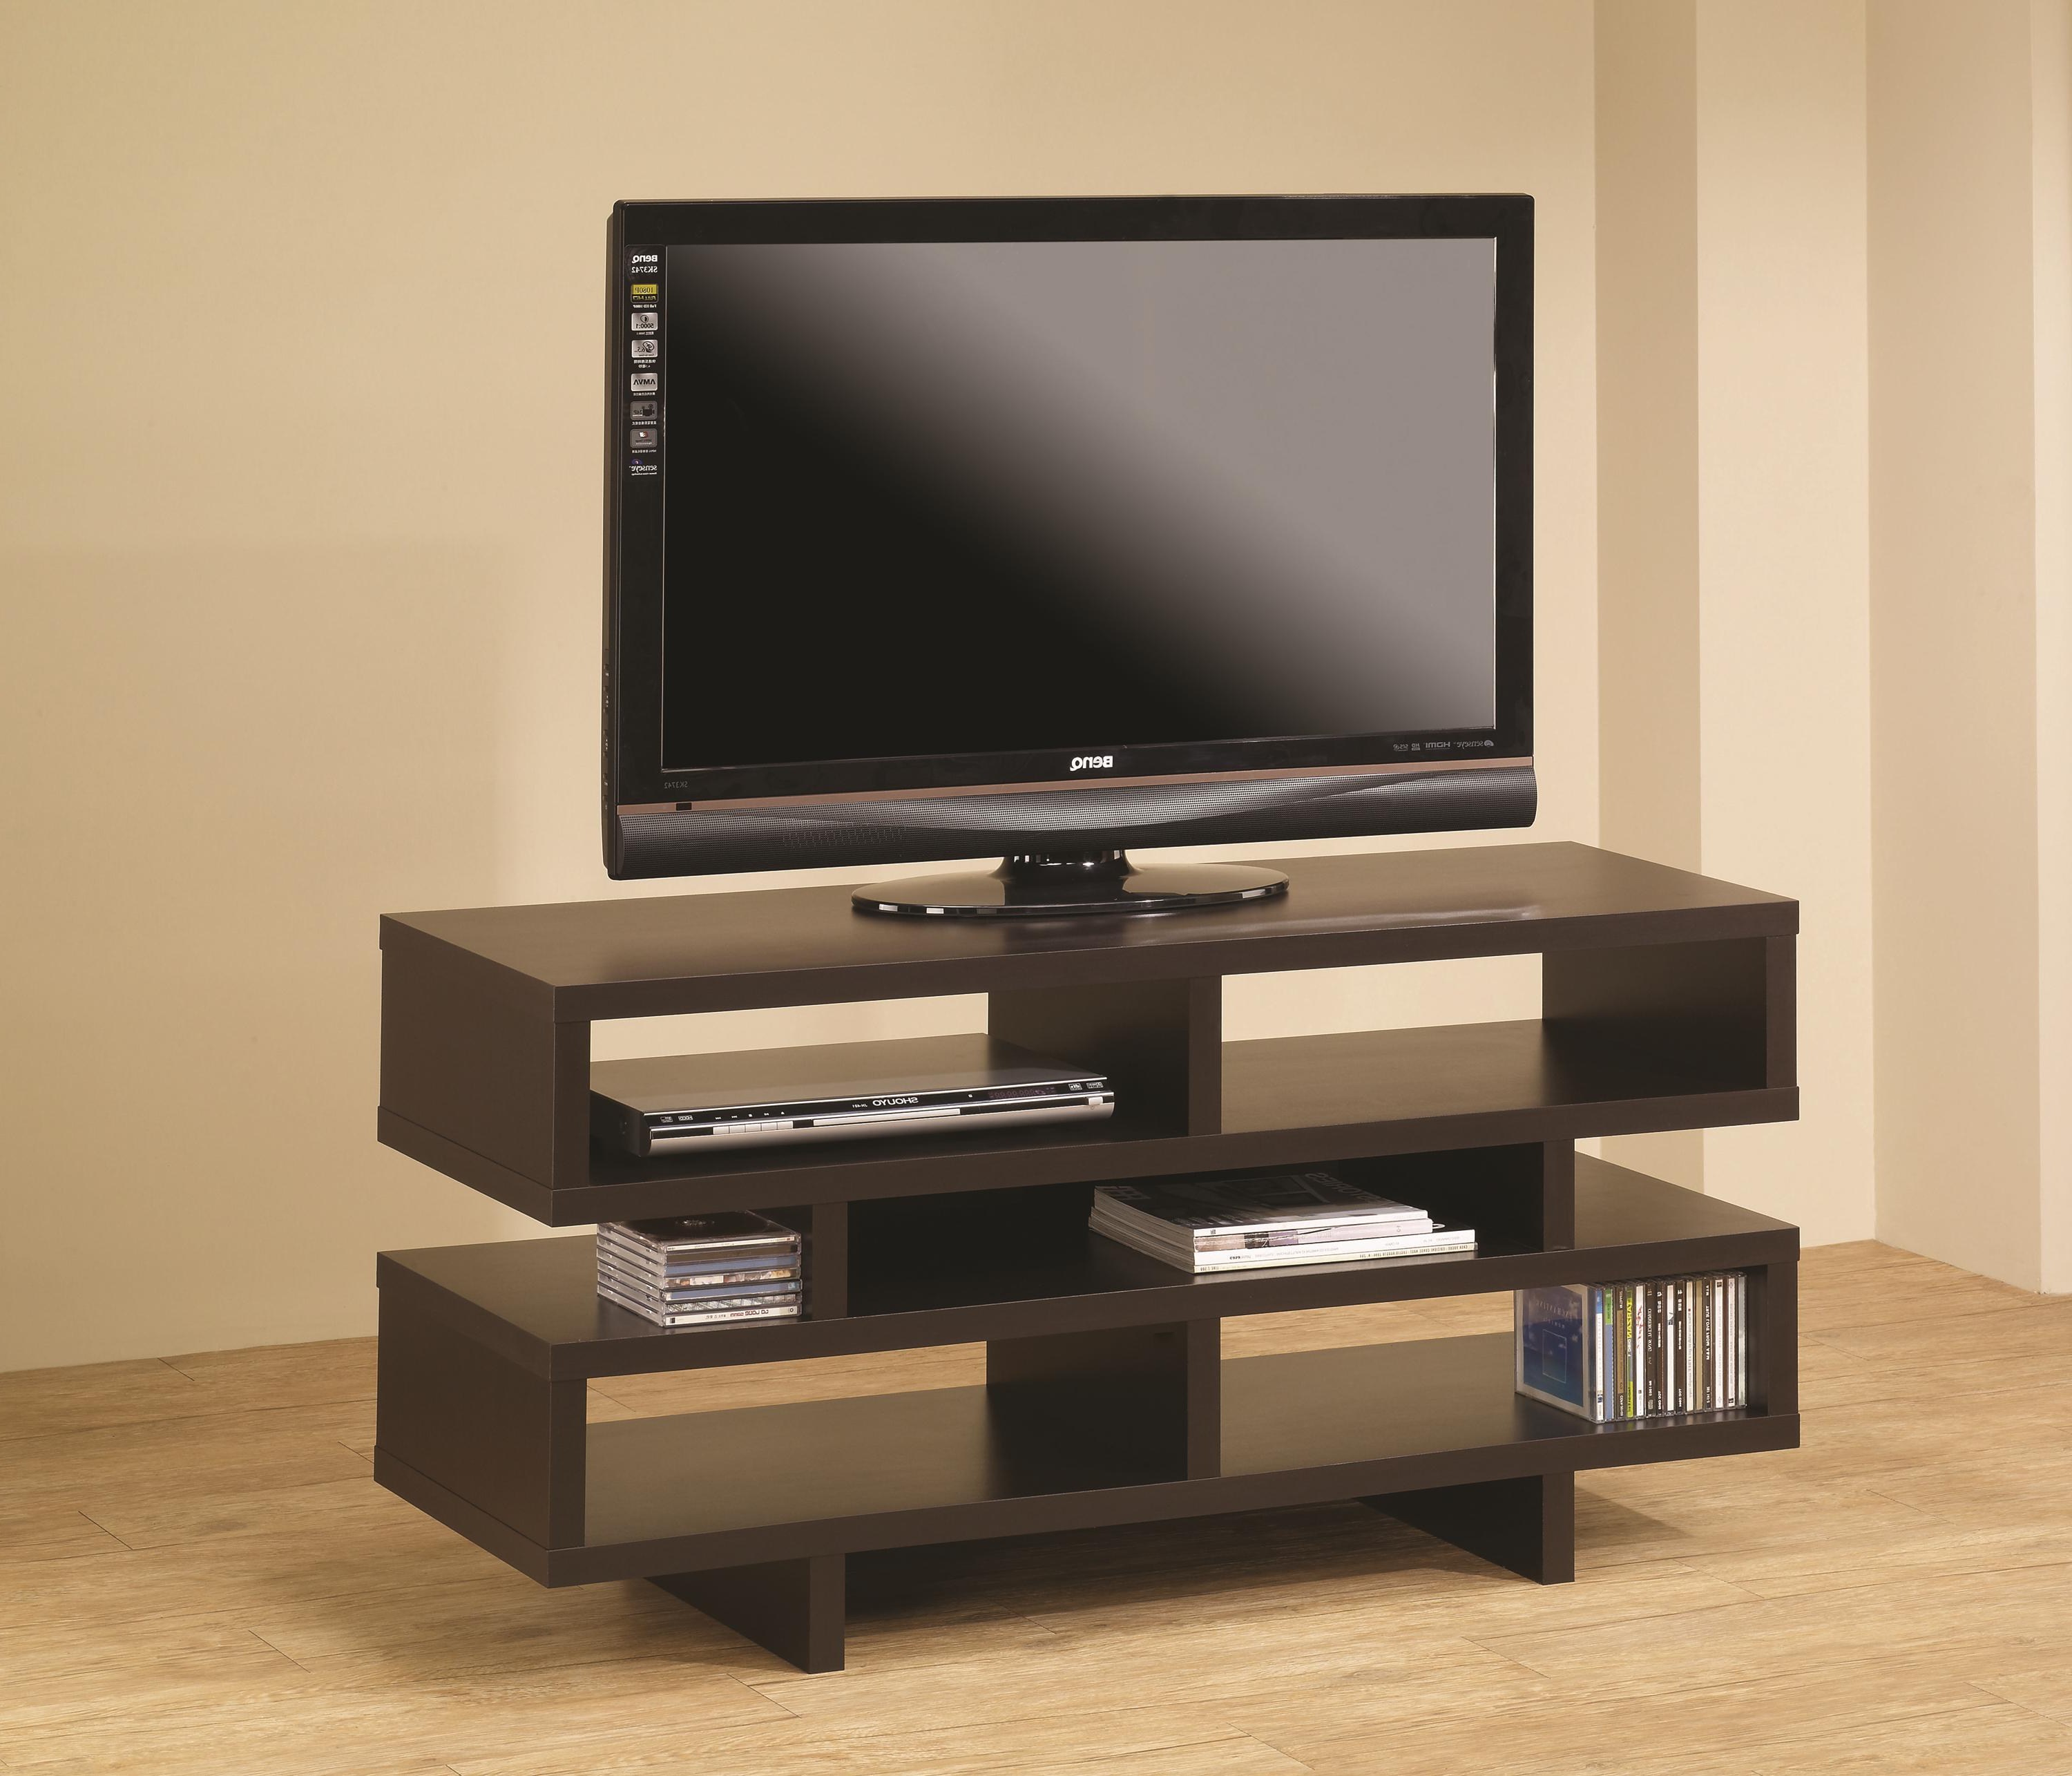 Popular Tv Tables For Coaster Tv Stands 700720 Contemporary Tv Console With Open Storage (Gallery 6 of 20)